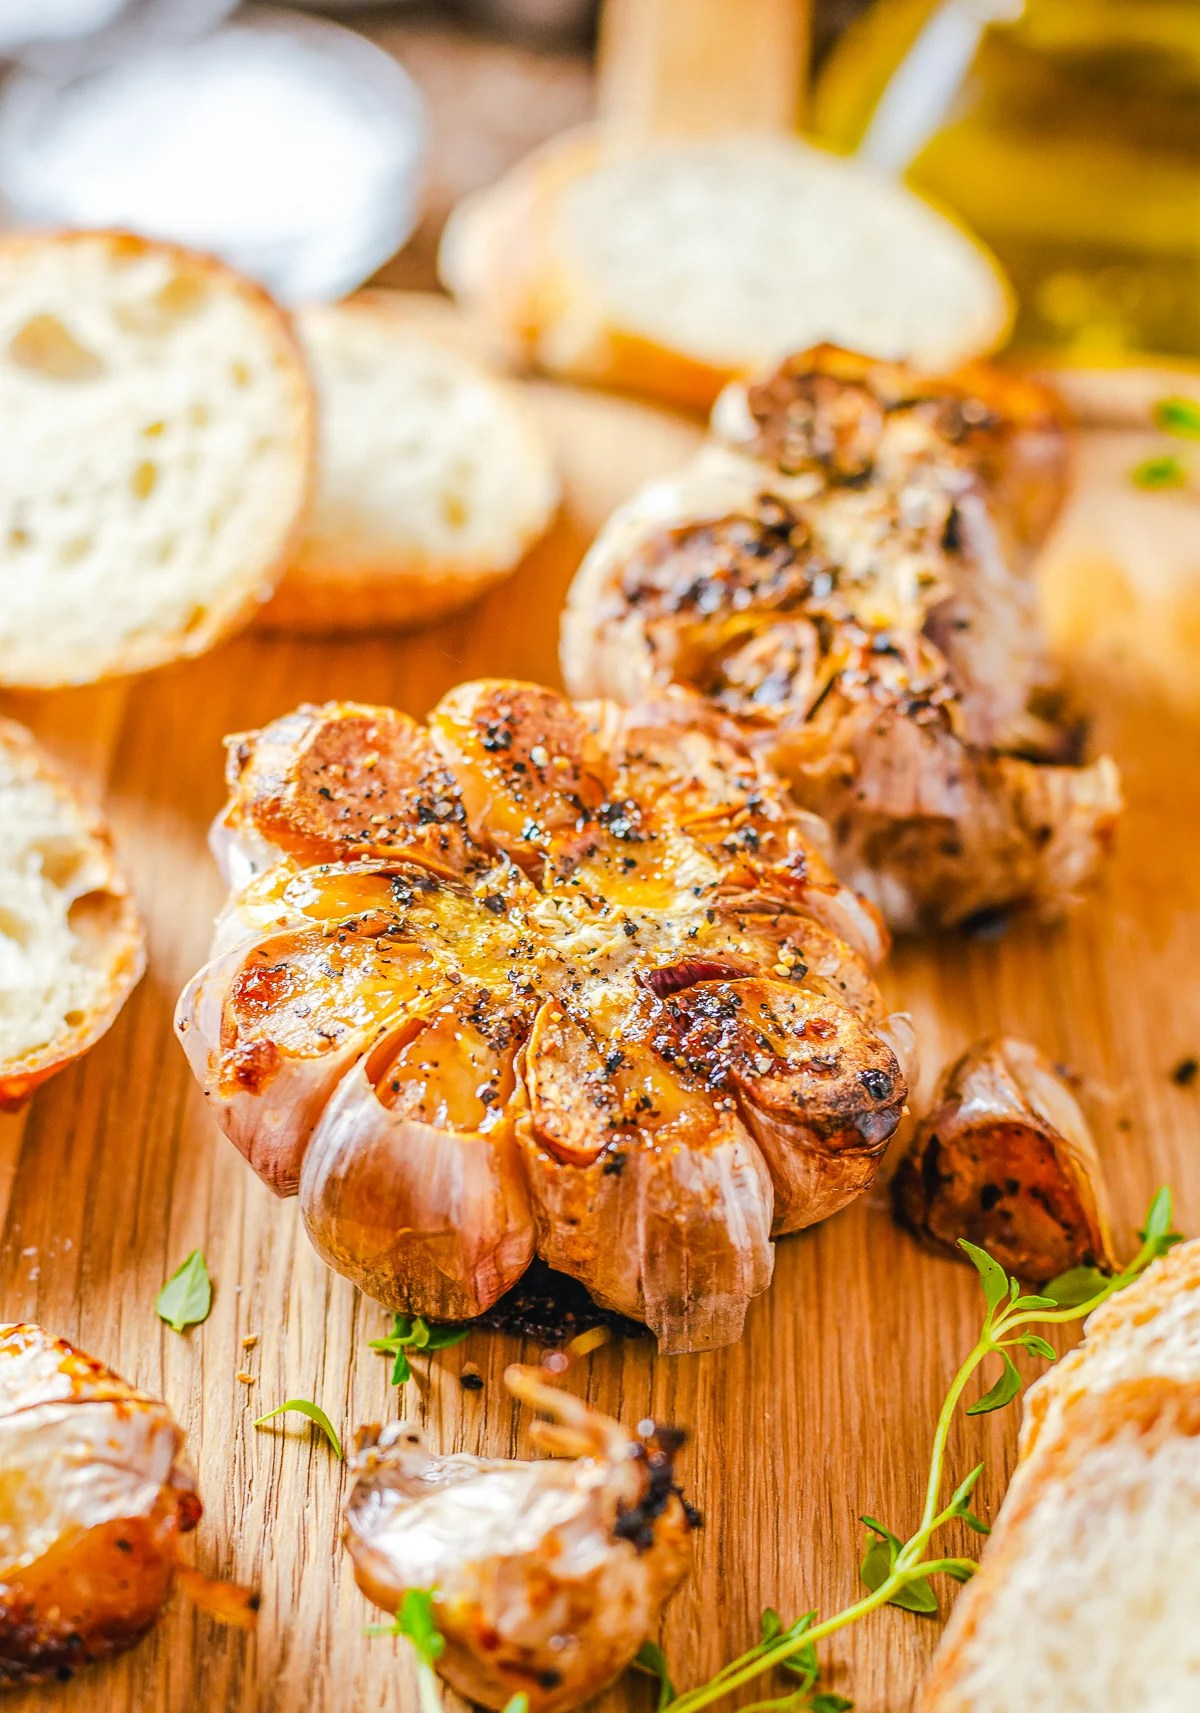 Finished Roasted Garlic on wooden board with herbs and bread slices.